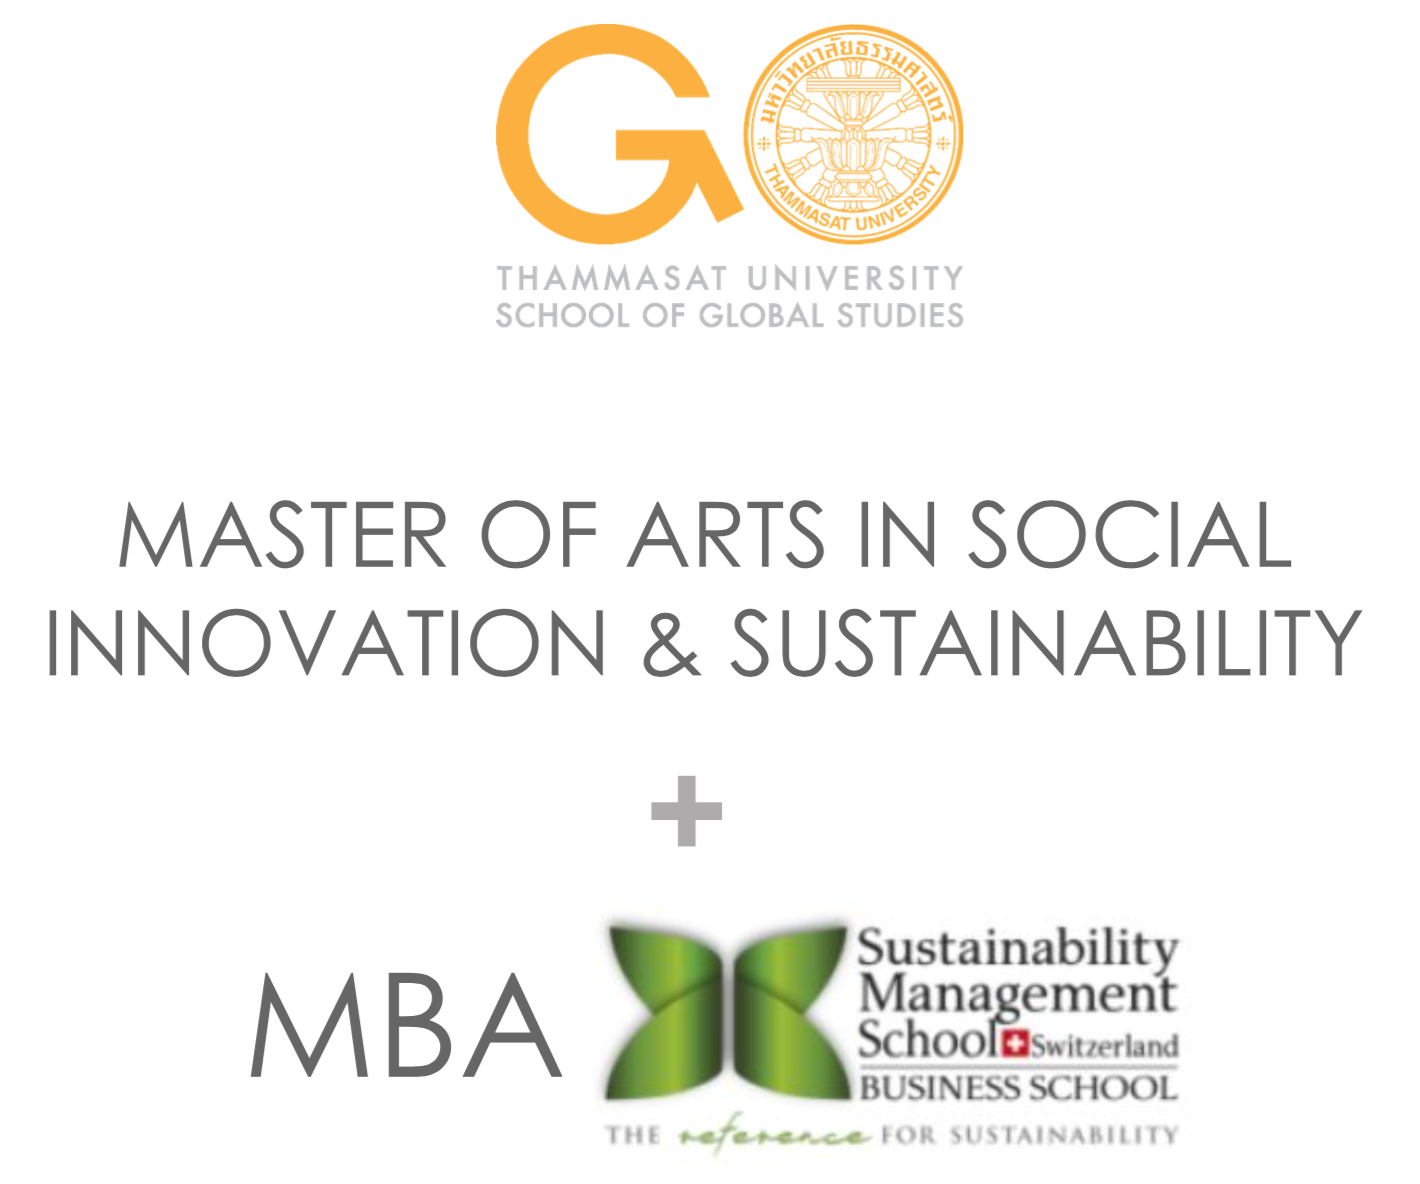 MA + MBA Social Innovation and Sustainability, The School of Global